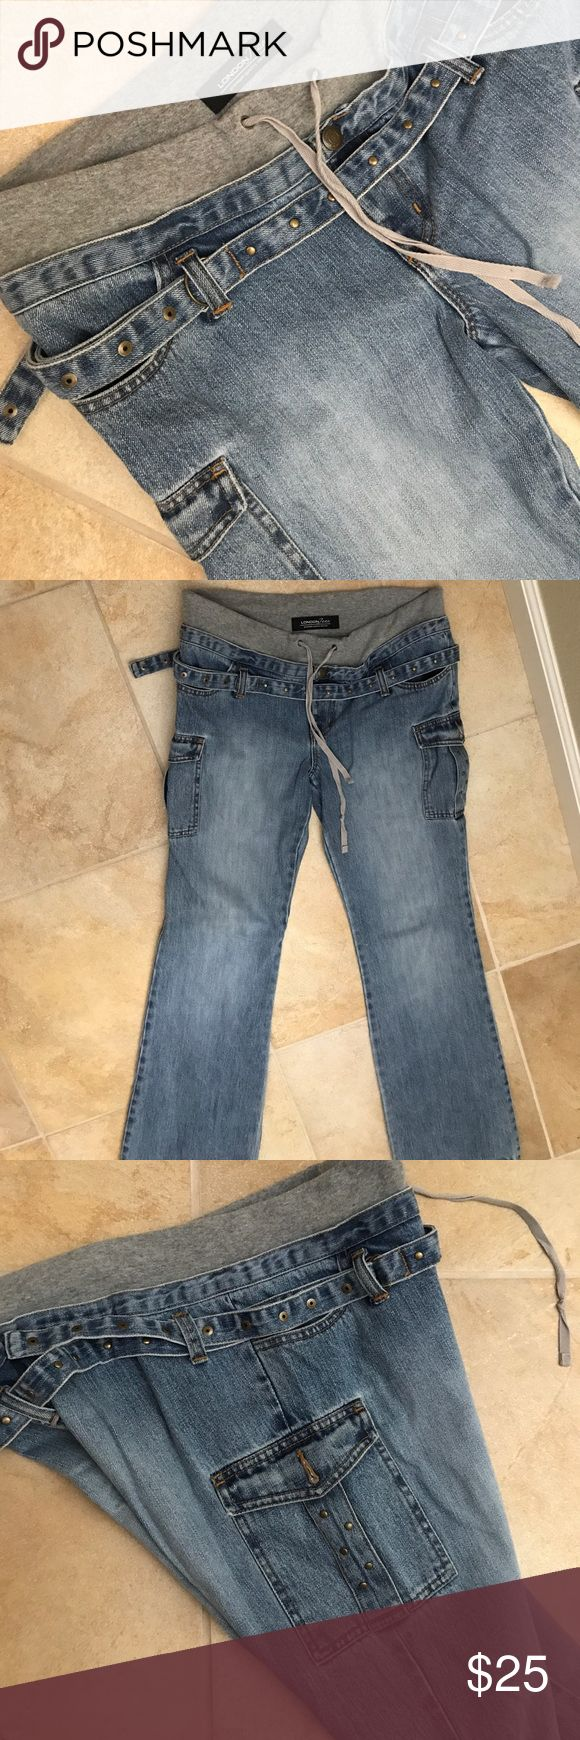 Jeans London Jeans, Premium Qualify Denim, tall, size 10, 95% cotton, 5% spandex, made in China Jeans Straight Leg